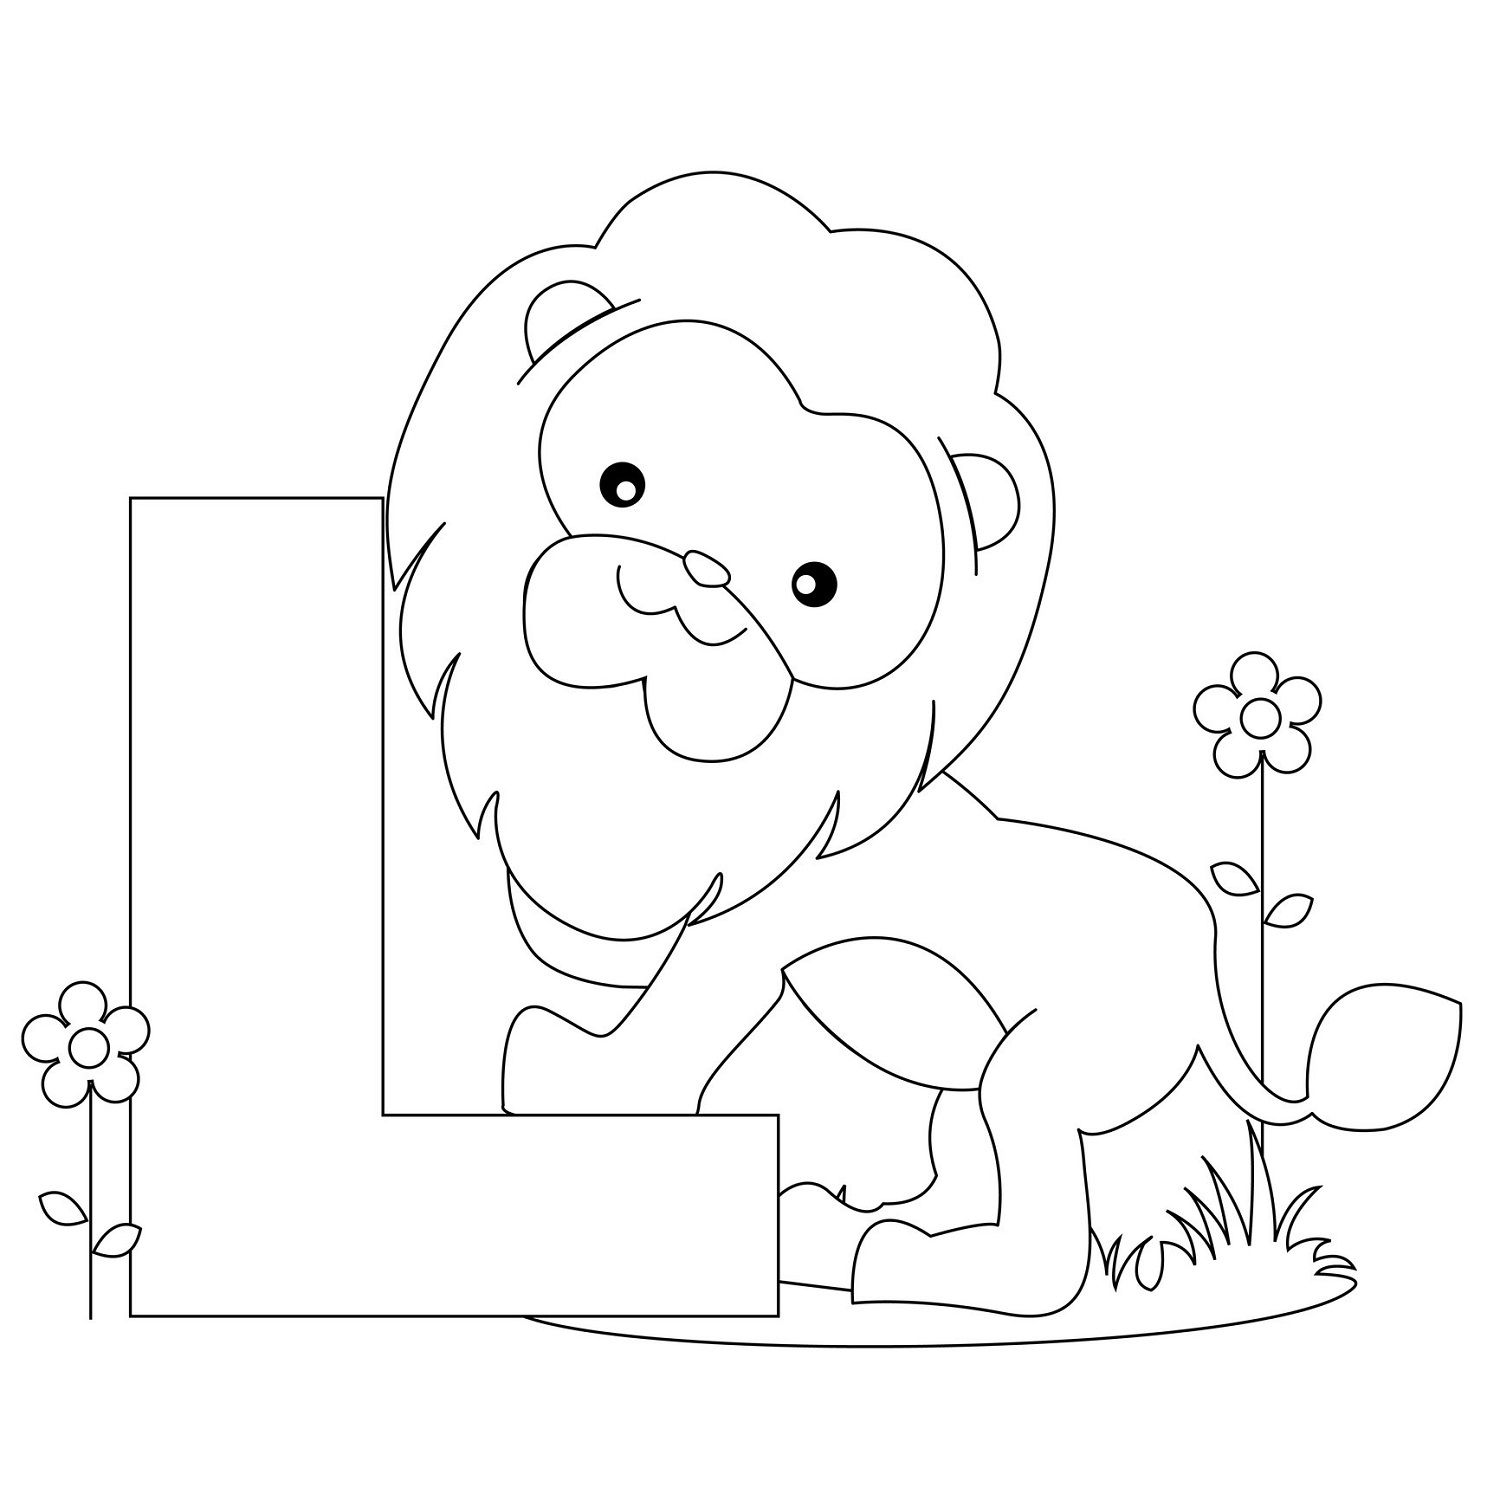 Coloring book pages letter m - Alphabet Printables For Pre School